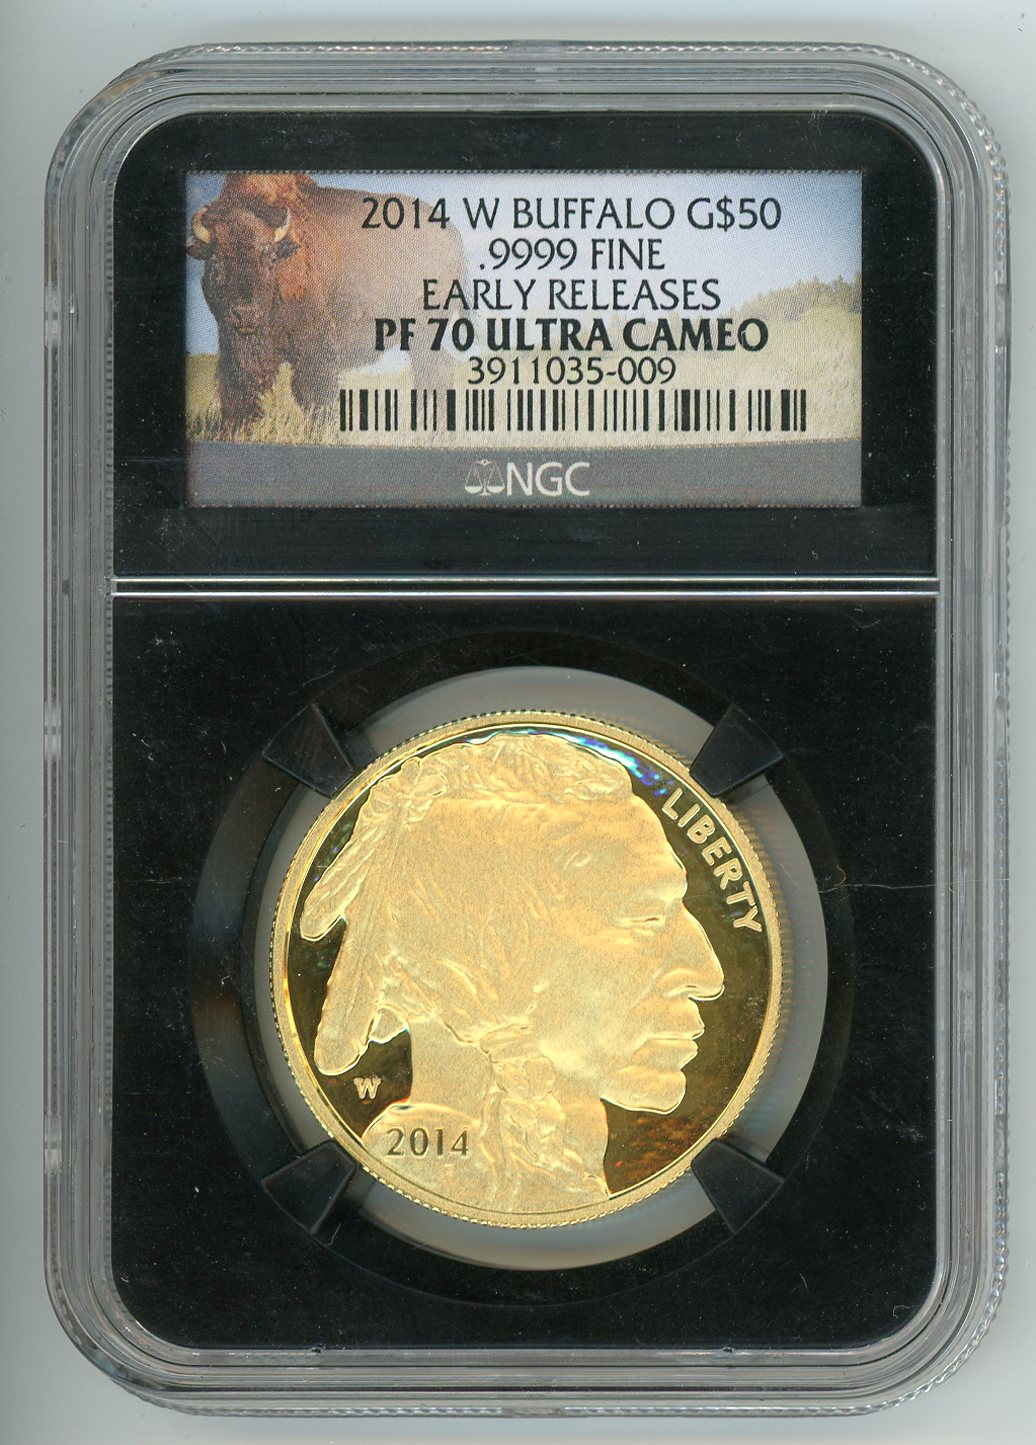 Thumbnail for 2014 1oz Buffalo Early Release Slabbed NGC PF70 Ultra Cameo